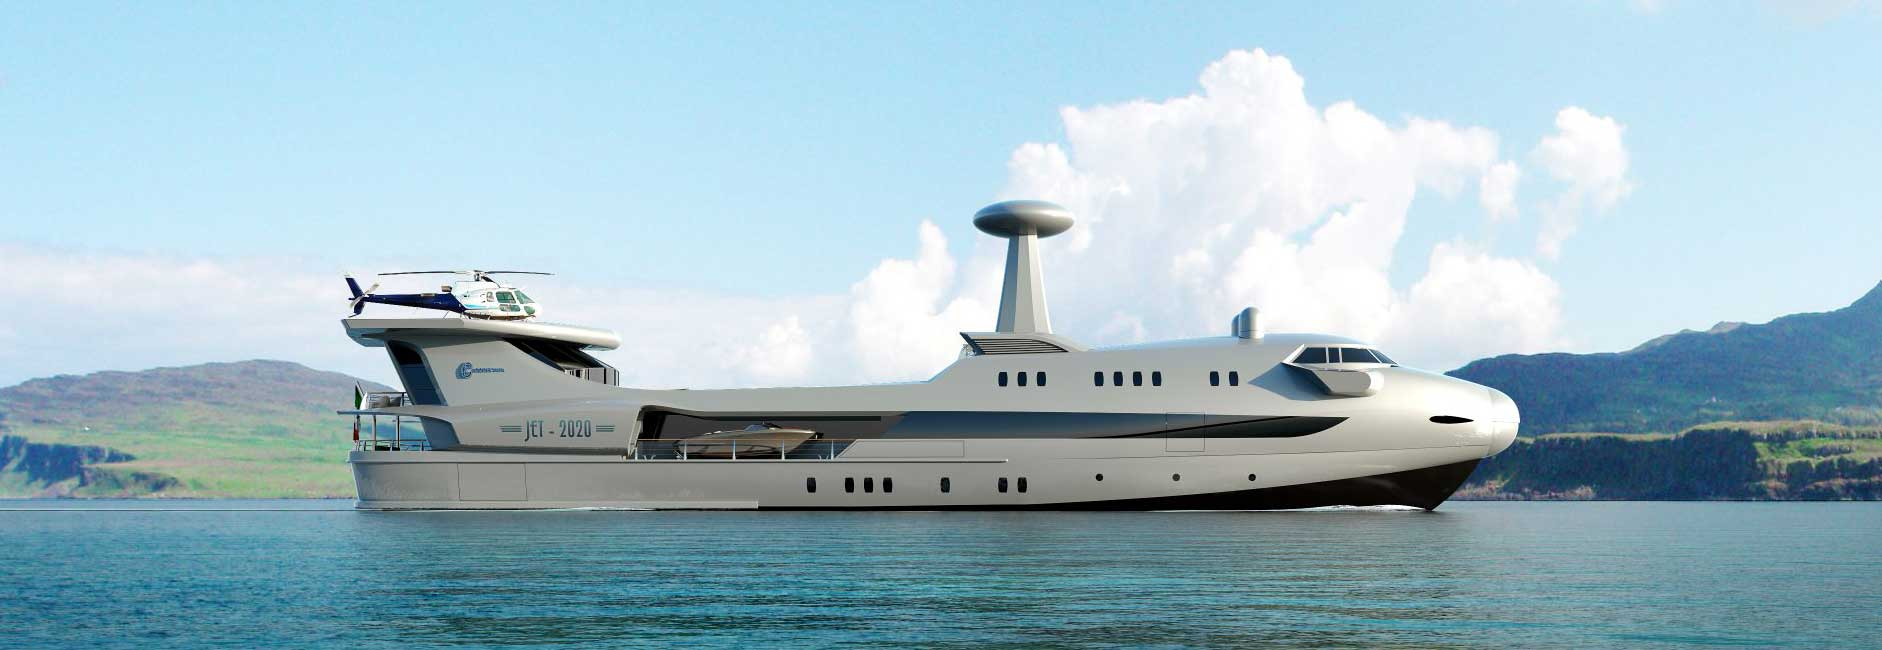 New yacht design by Codecasa